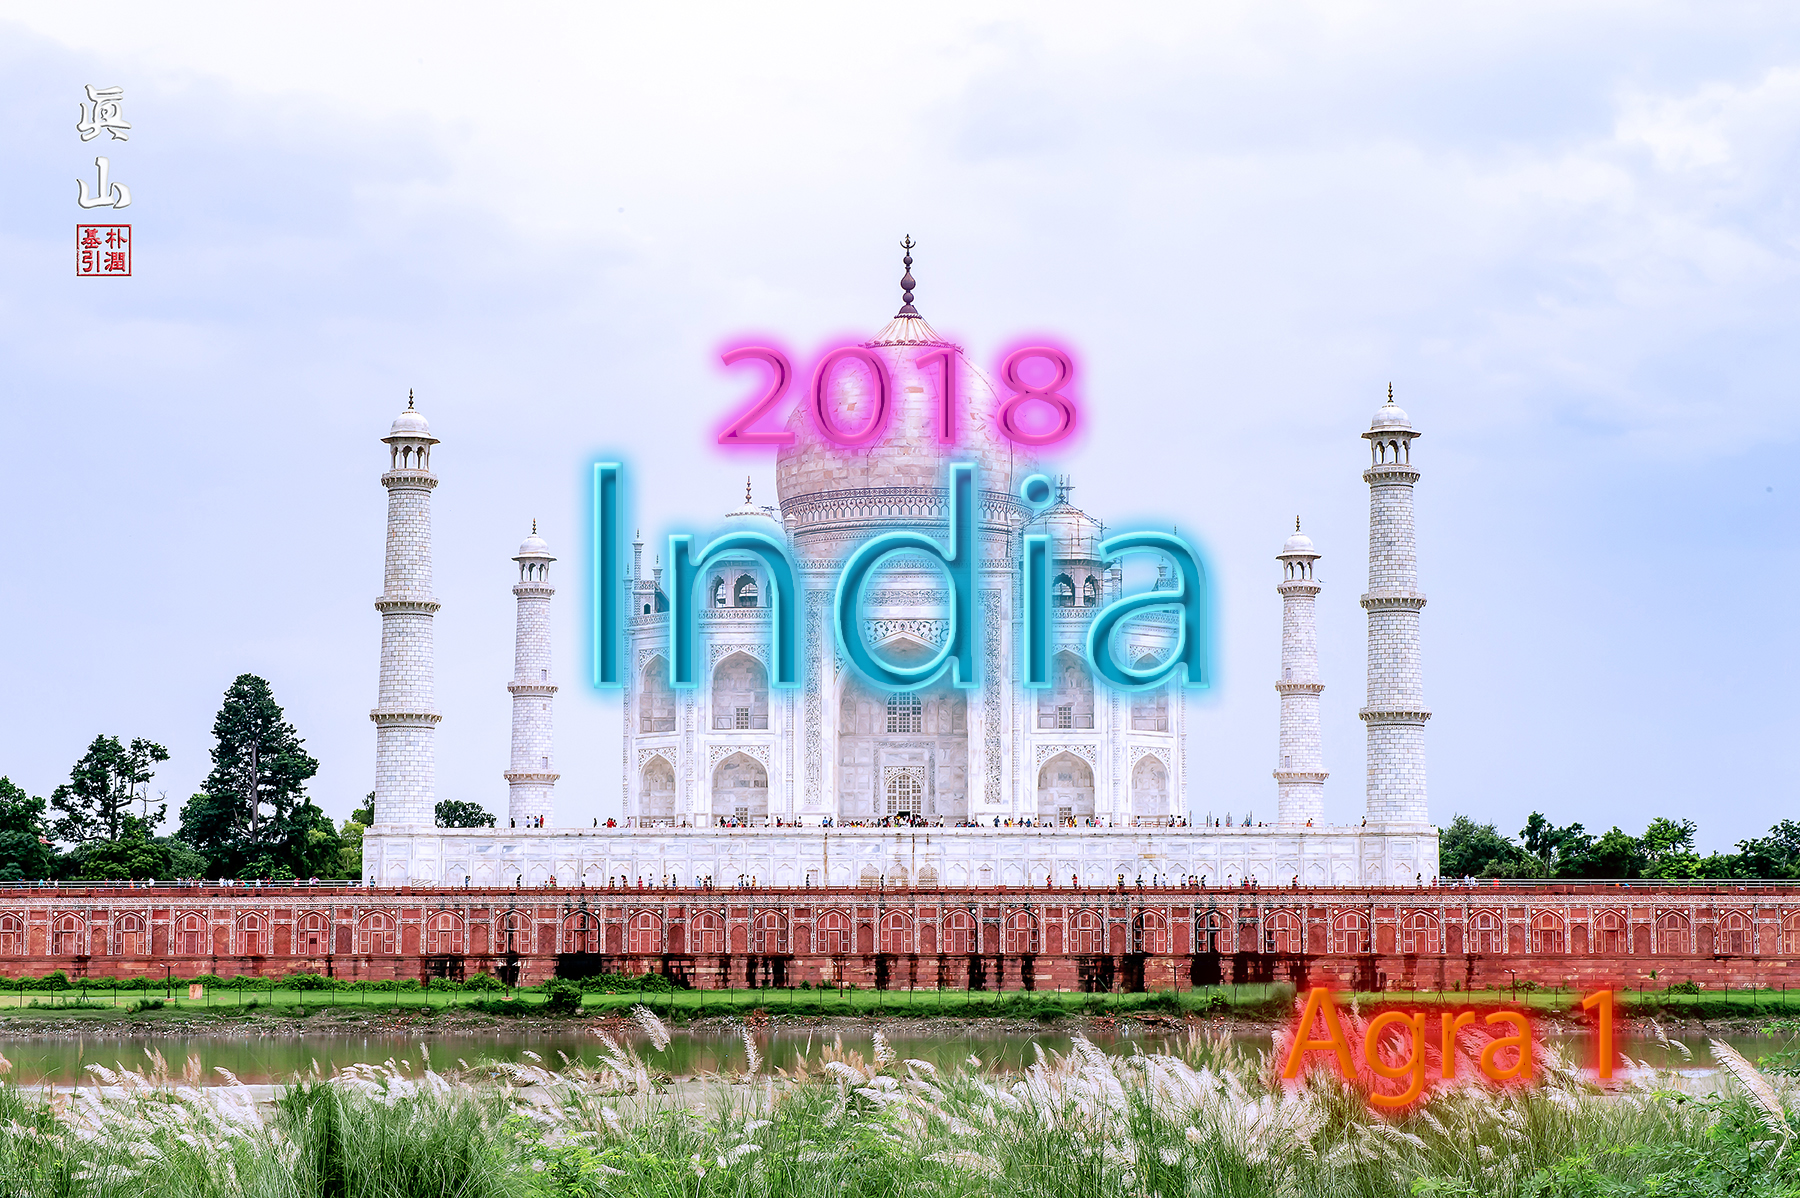 2018 India Tour - Agra 1, 5th day